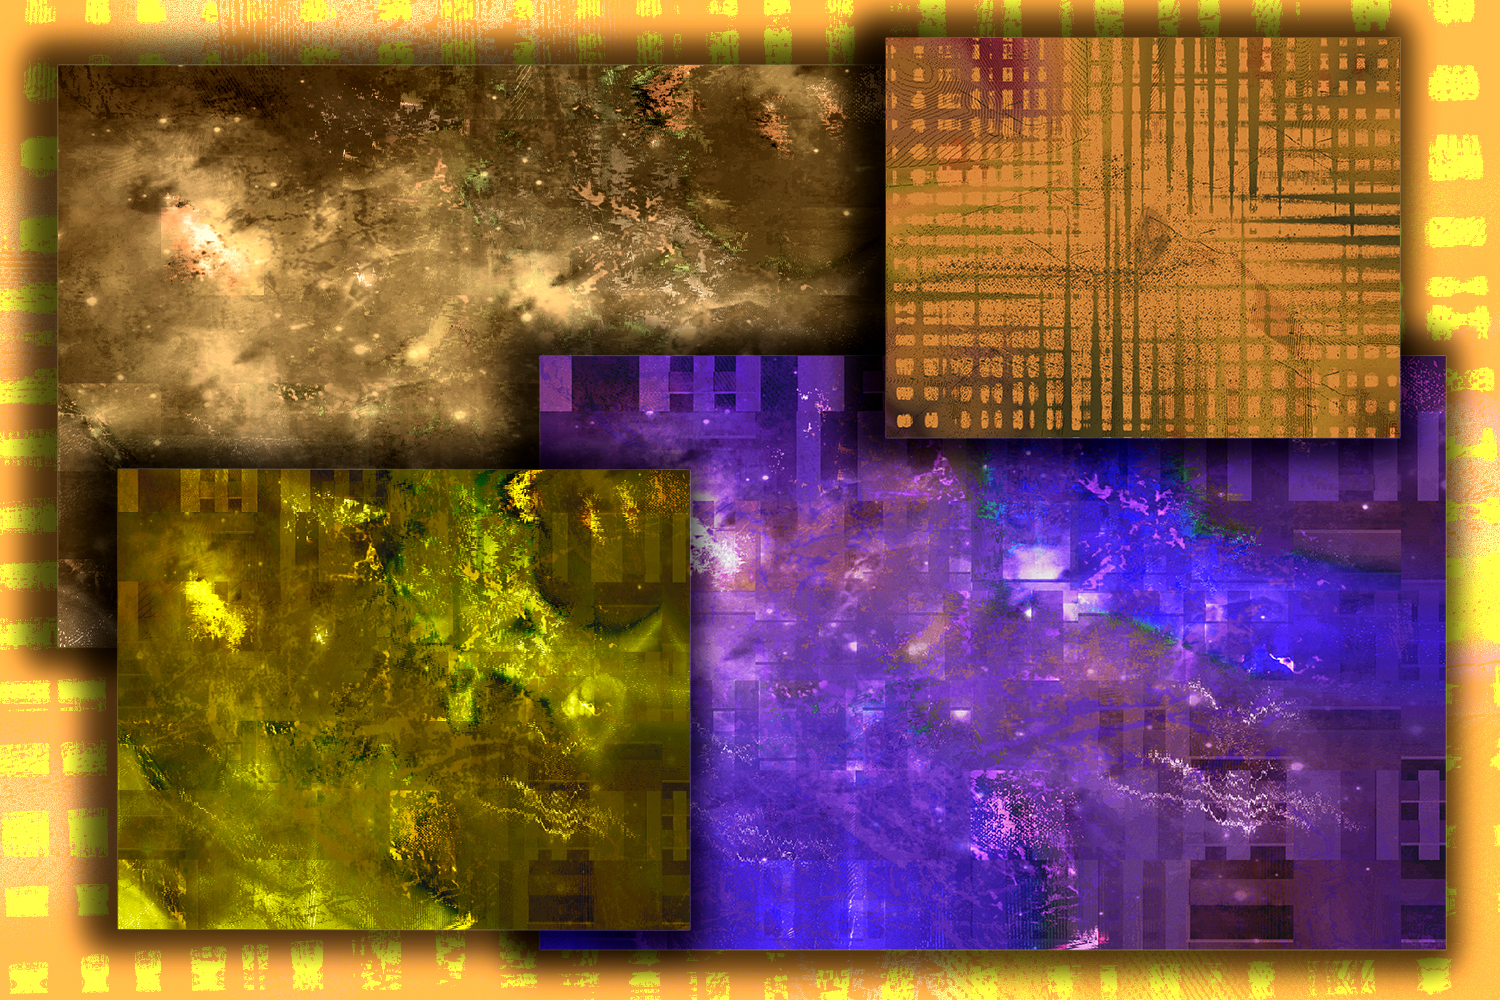 15 inky Distressed Textures. Abstract grunge themes. Ink Art example image 3